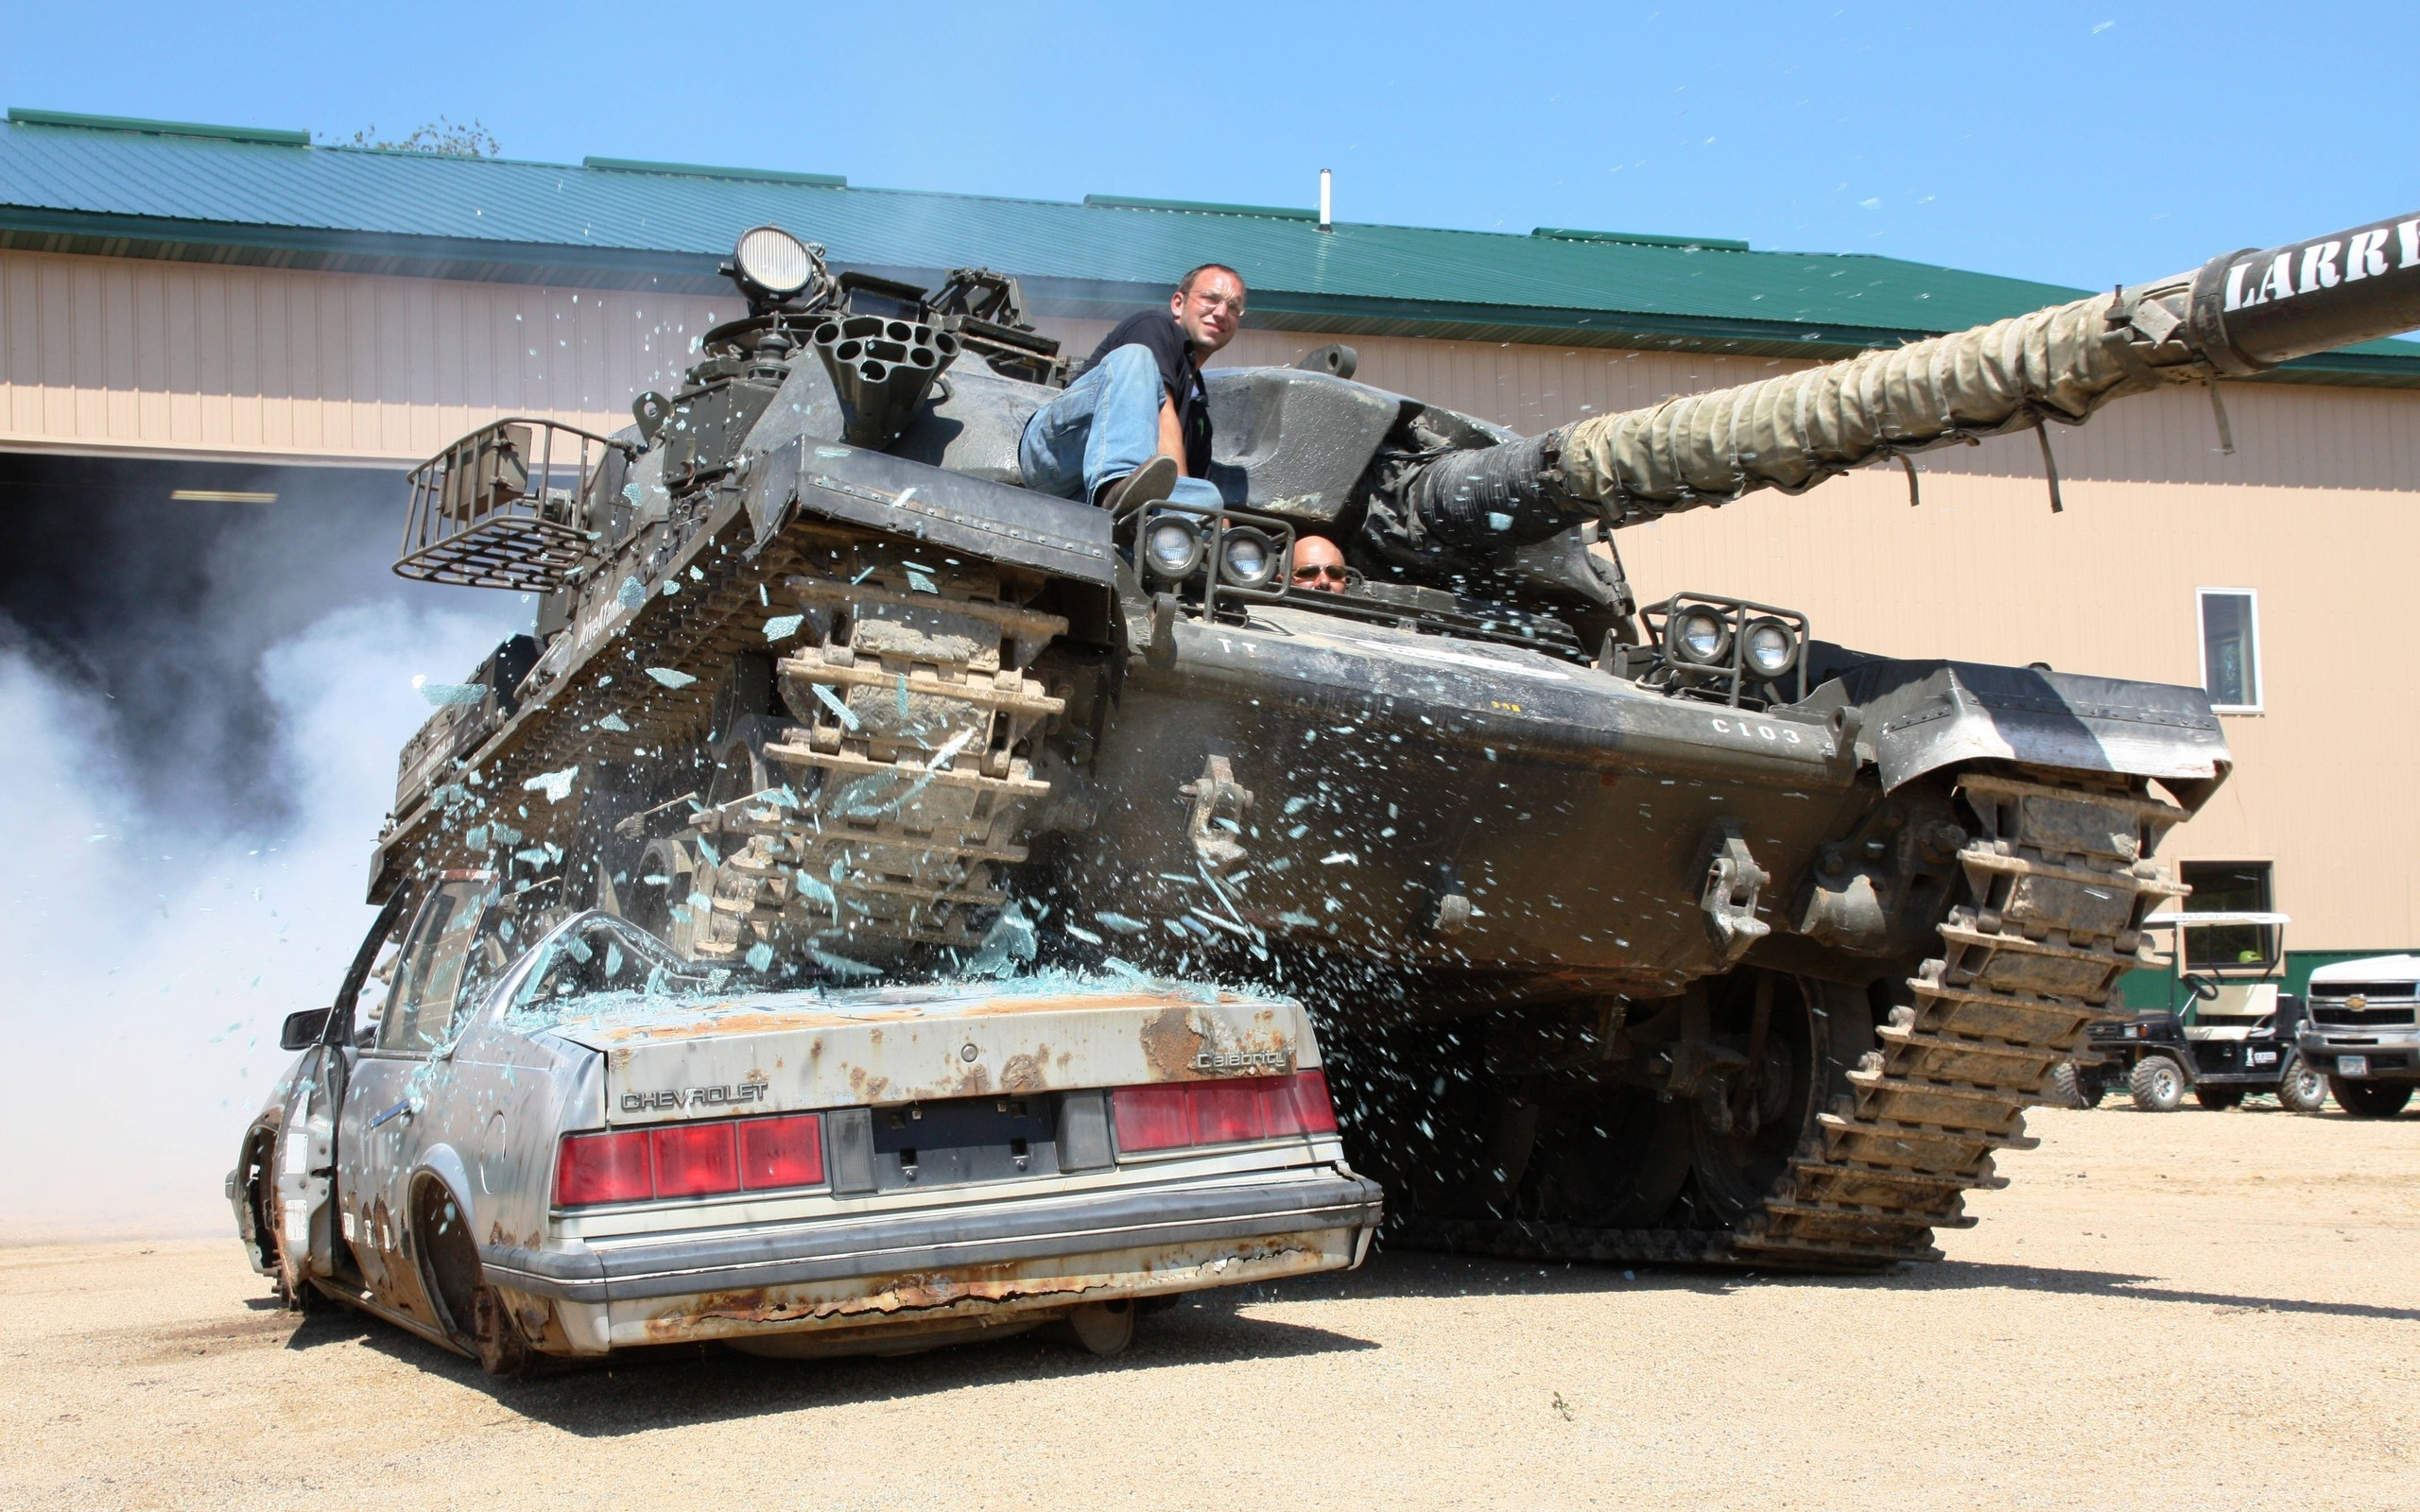 Res: 2560x1600, Military - Tank Destruction Car Humor Funny Wallpaper